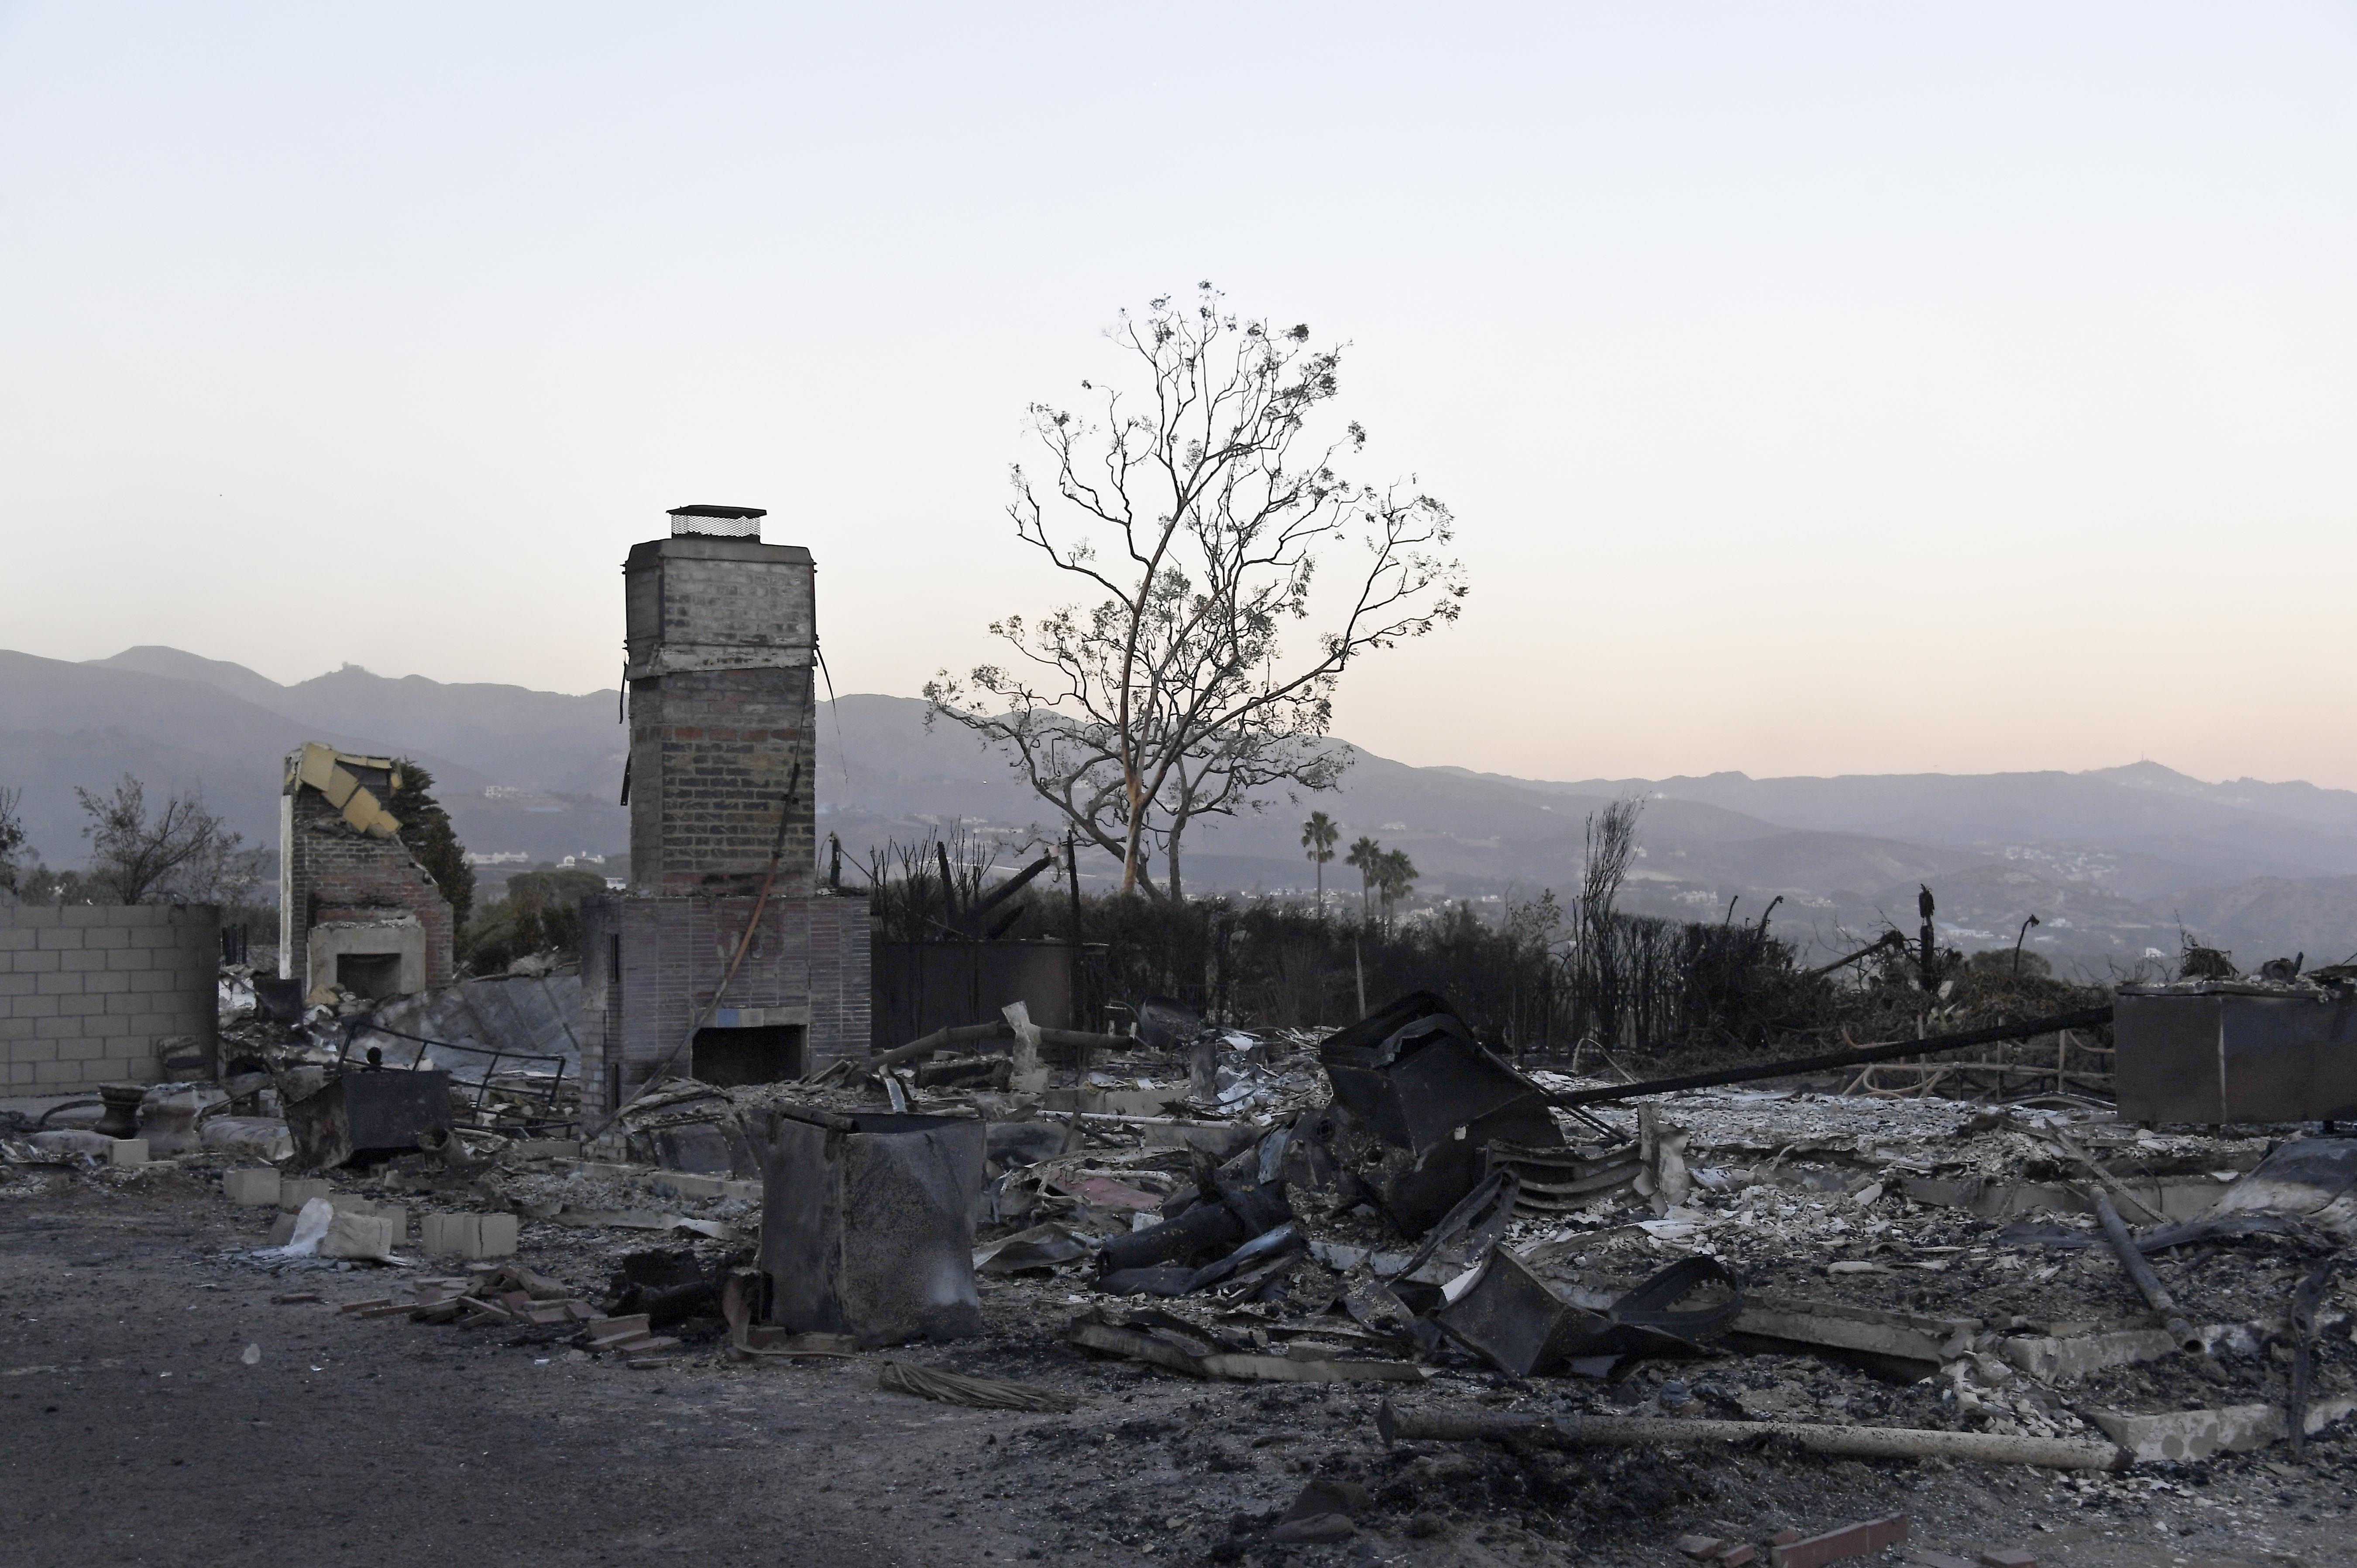 A Totally Incomplete History Of Trouble At The Chateau Marmont Murdered Out 1955 Cadillac Woolsey Fire Containment Grows To 69 Percent Tally Buildings Destroyed Tops 600